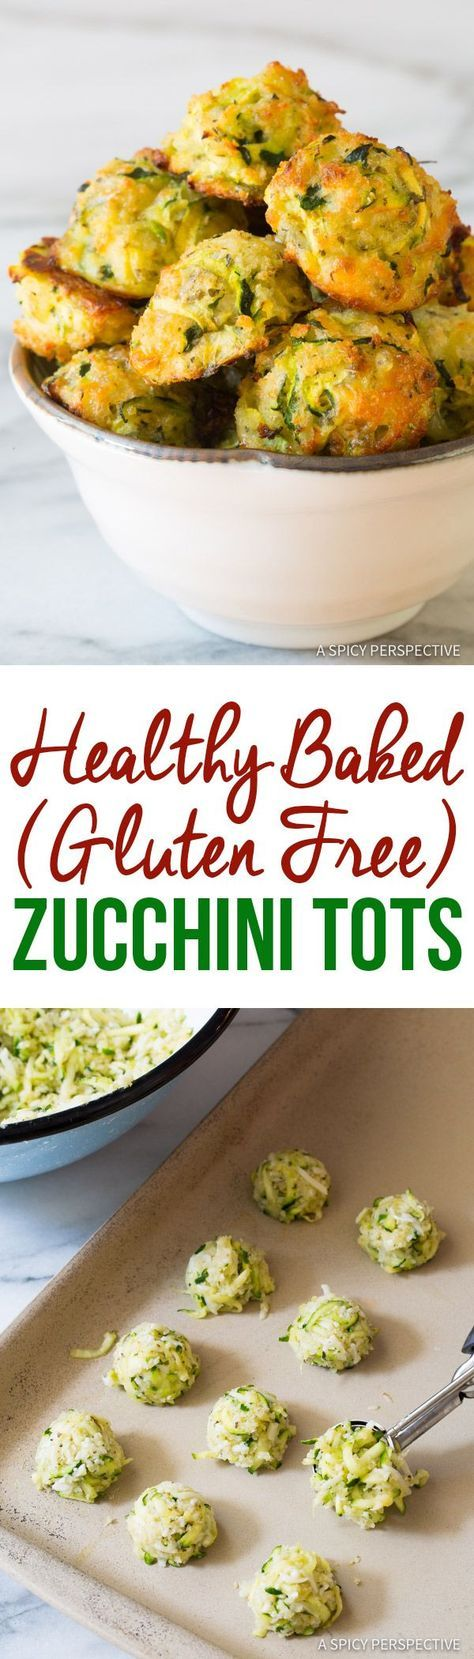 6-Ingredient Healthy Baked Zucchini Tots (Gluten Free!) | ASpicyPerspective... | The best gluten free appetizer to serve at an upcoming dinner party.